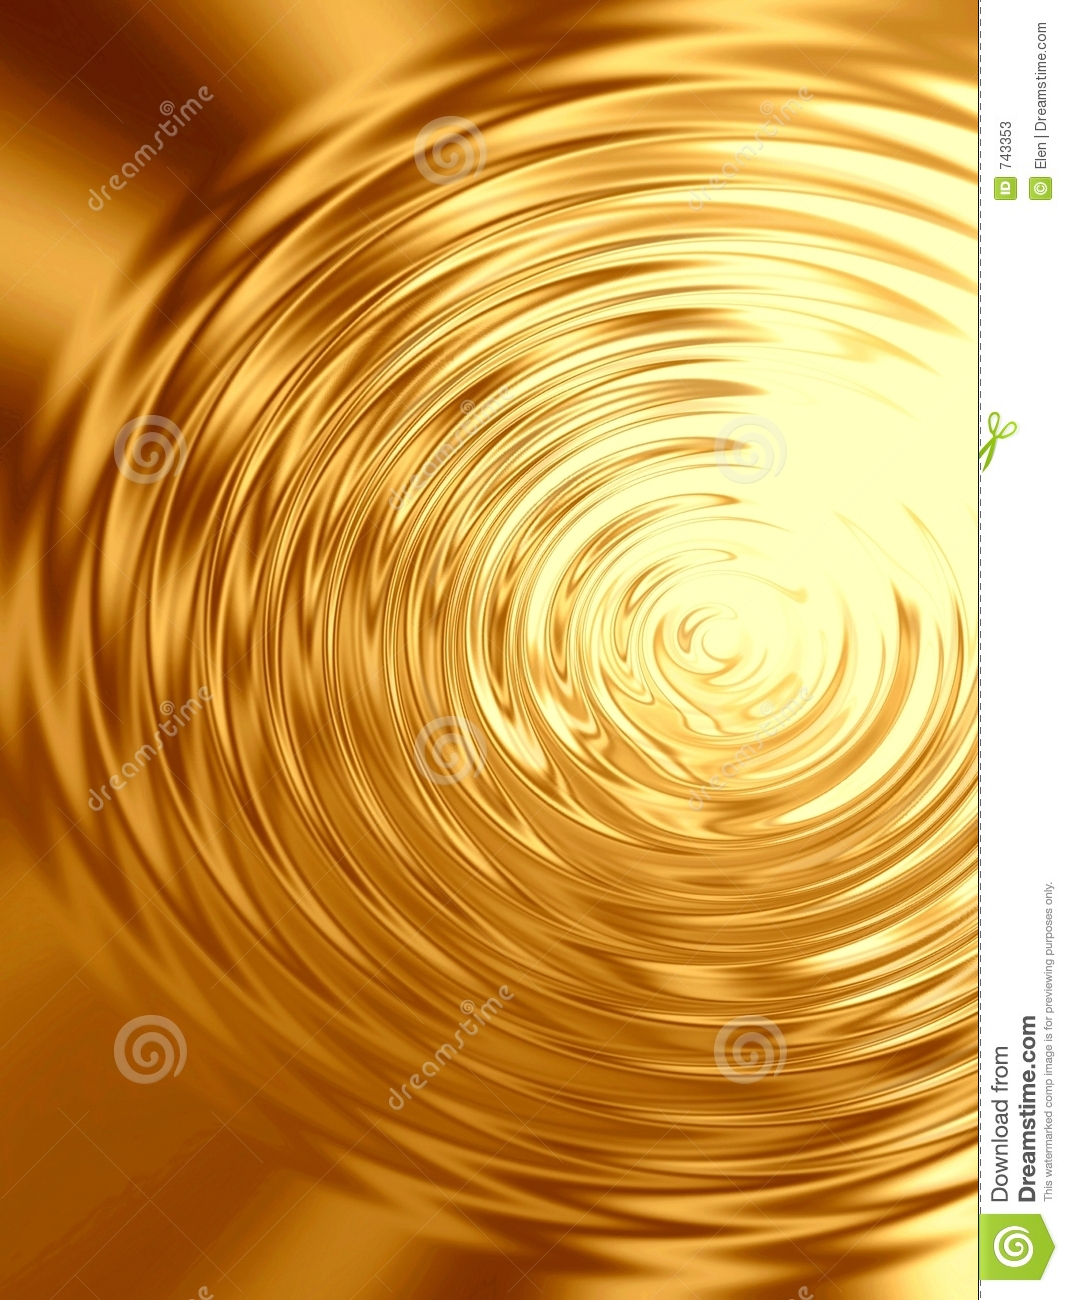 Gold Ripples In Water Stock Photos - Image: 743353